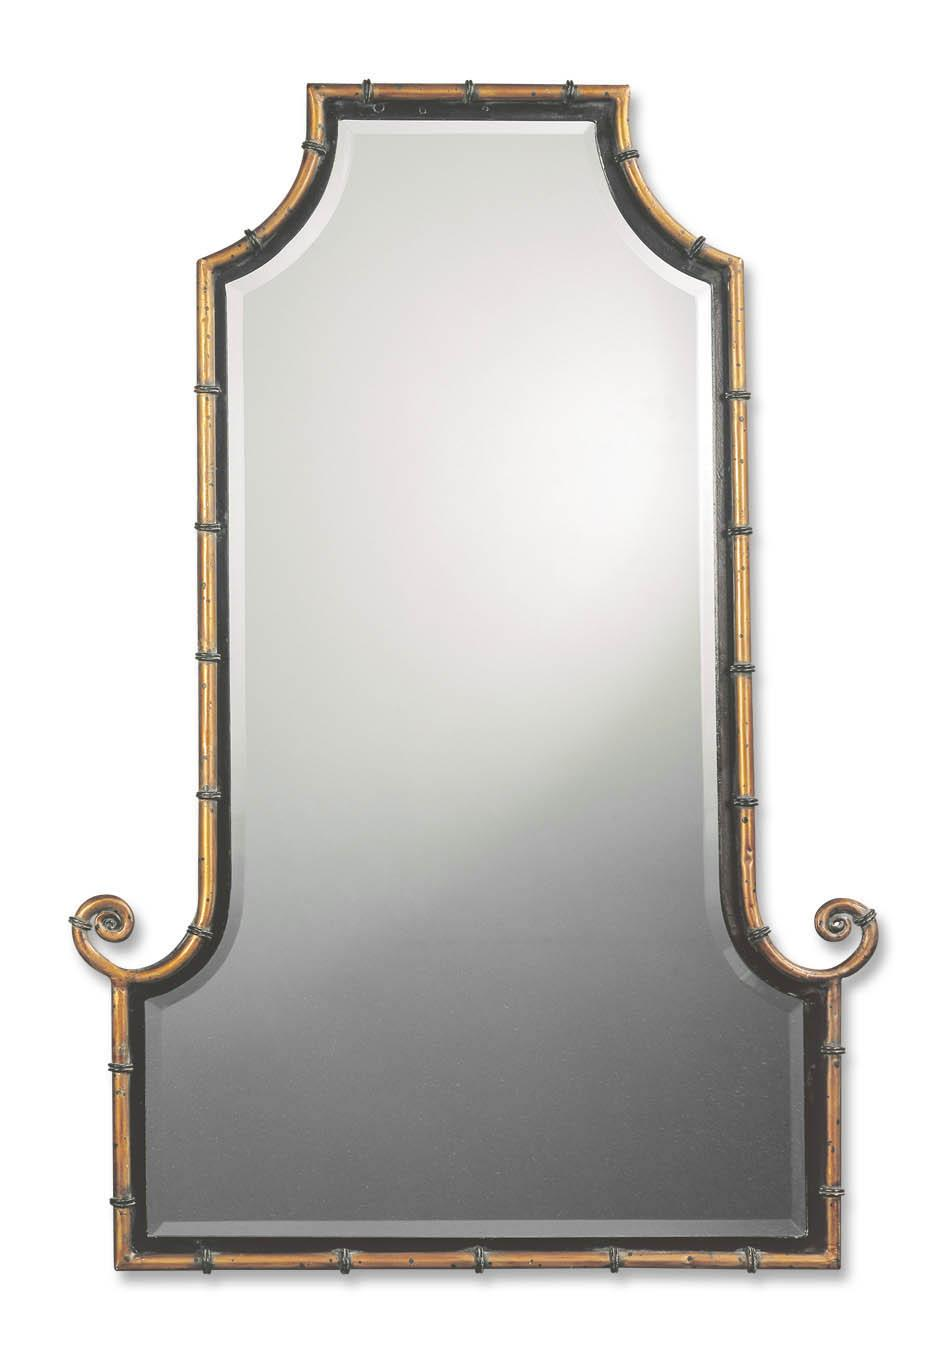 Uttermost Mirrors Himalaya Iron - Item Number: 10770 B